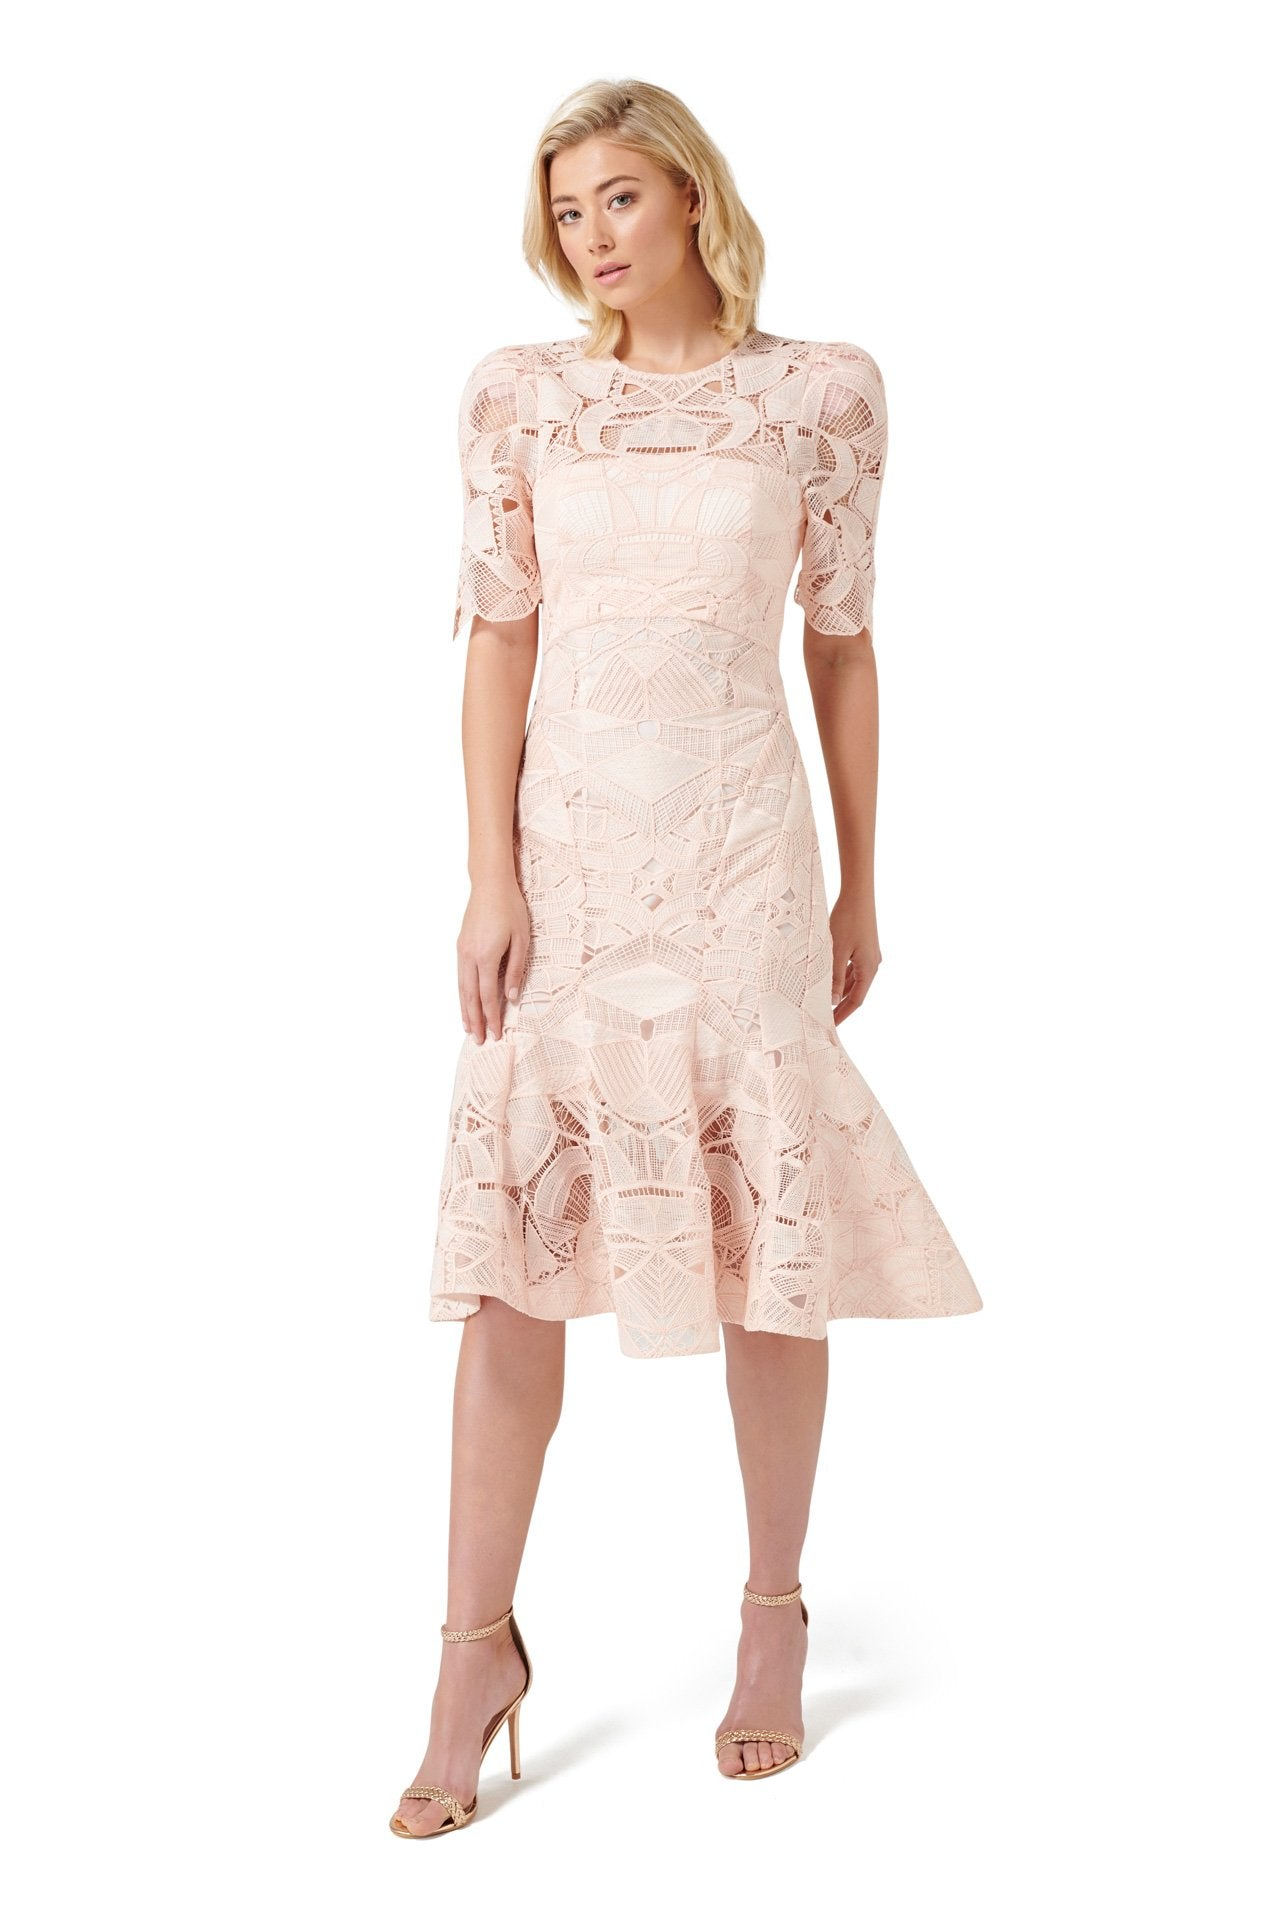 dfe44ef54e23 Blush Florence Midi dress – BU Club